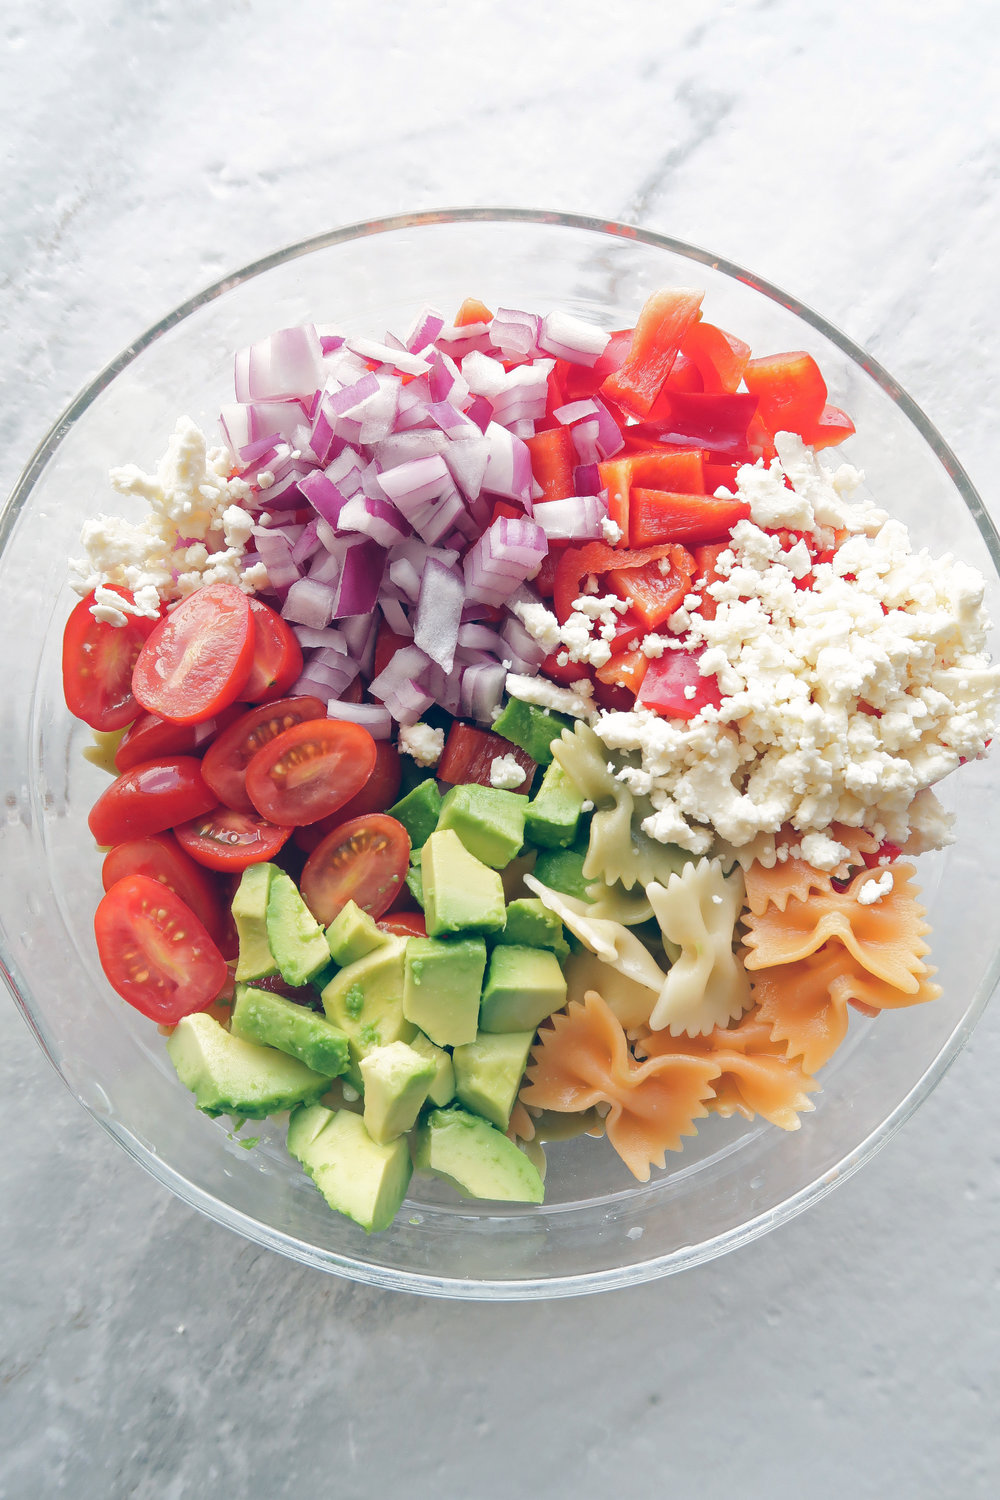 Chopped avocado, tomatoes, red onions, bell pepper, feta, and farfalle pasta in a large bowl.